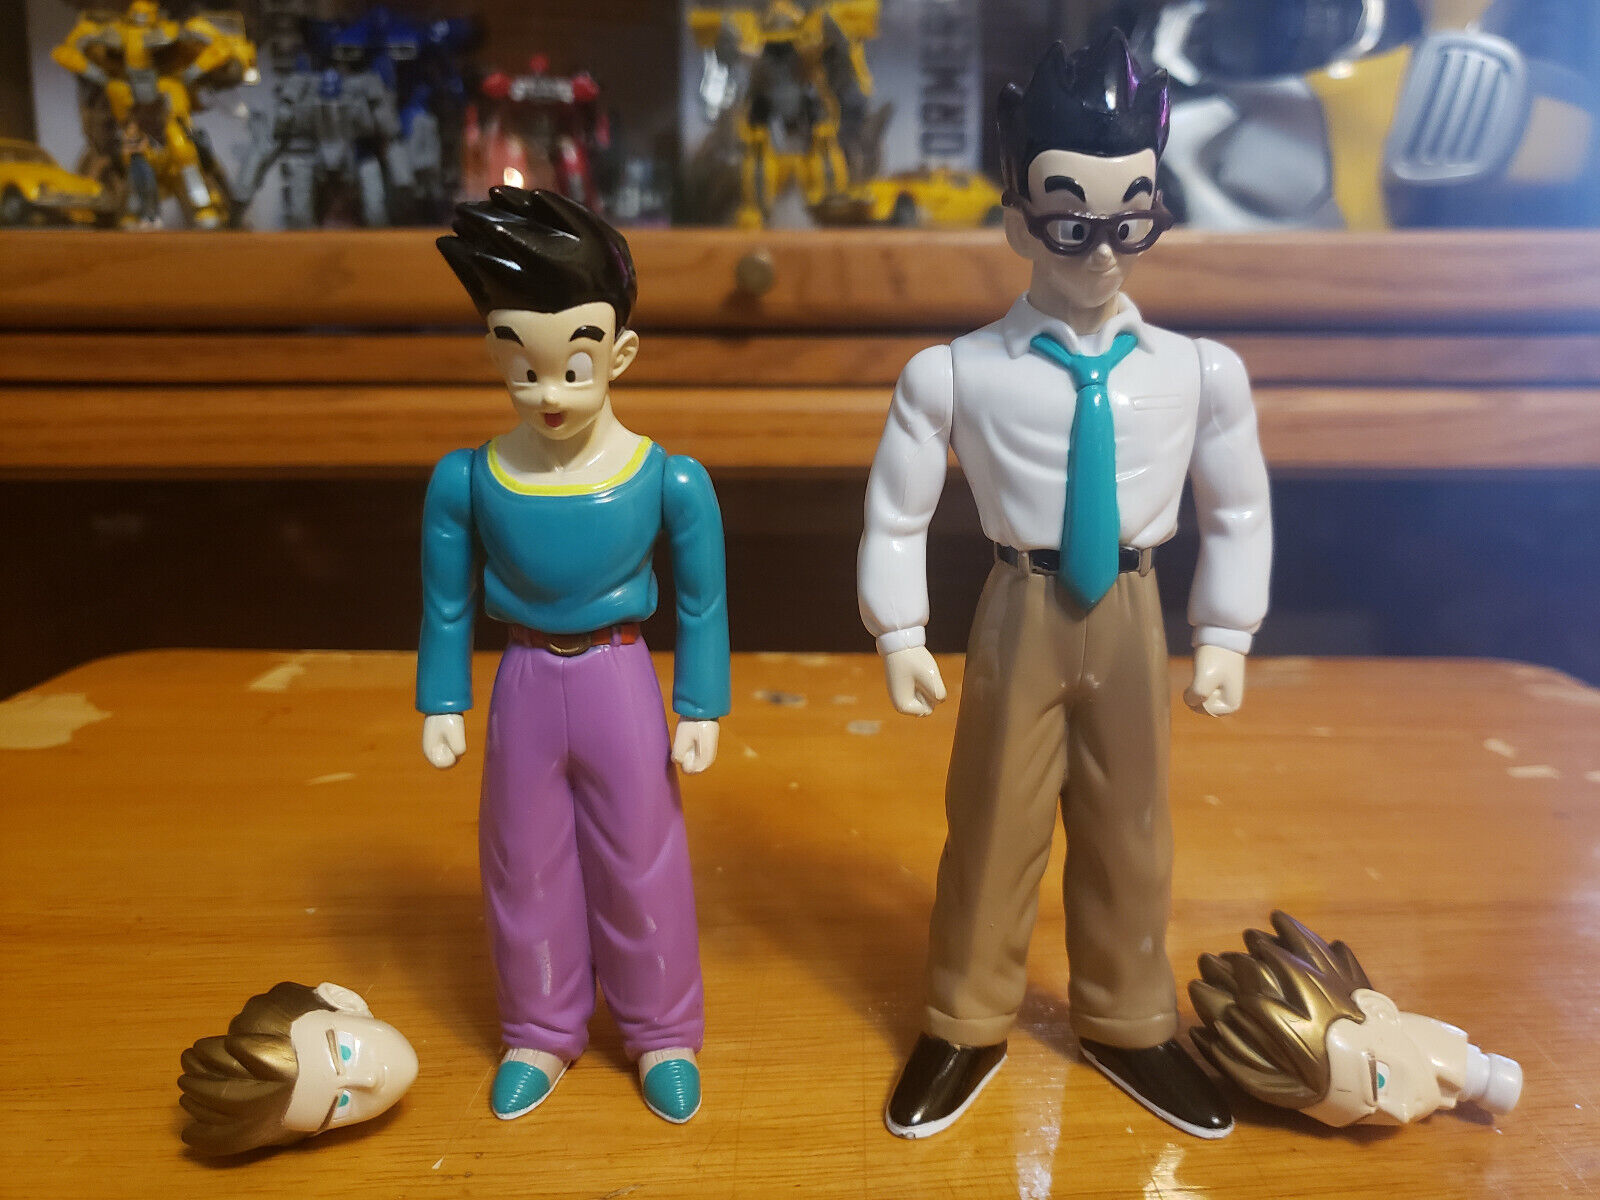 Character:Super Saiyan Gohan and Goten Vol 35 (complete):BANDAI Dragonball Z  and Dragon Ball GT super battle collection AB Toys & Irwin